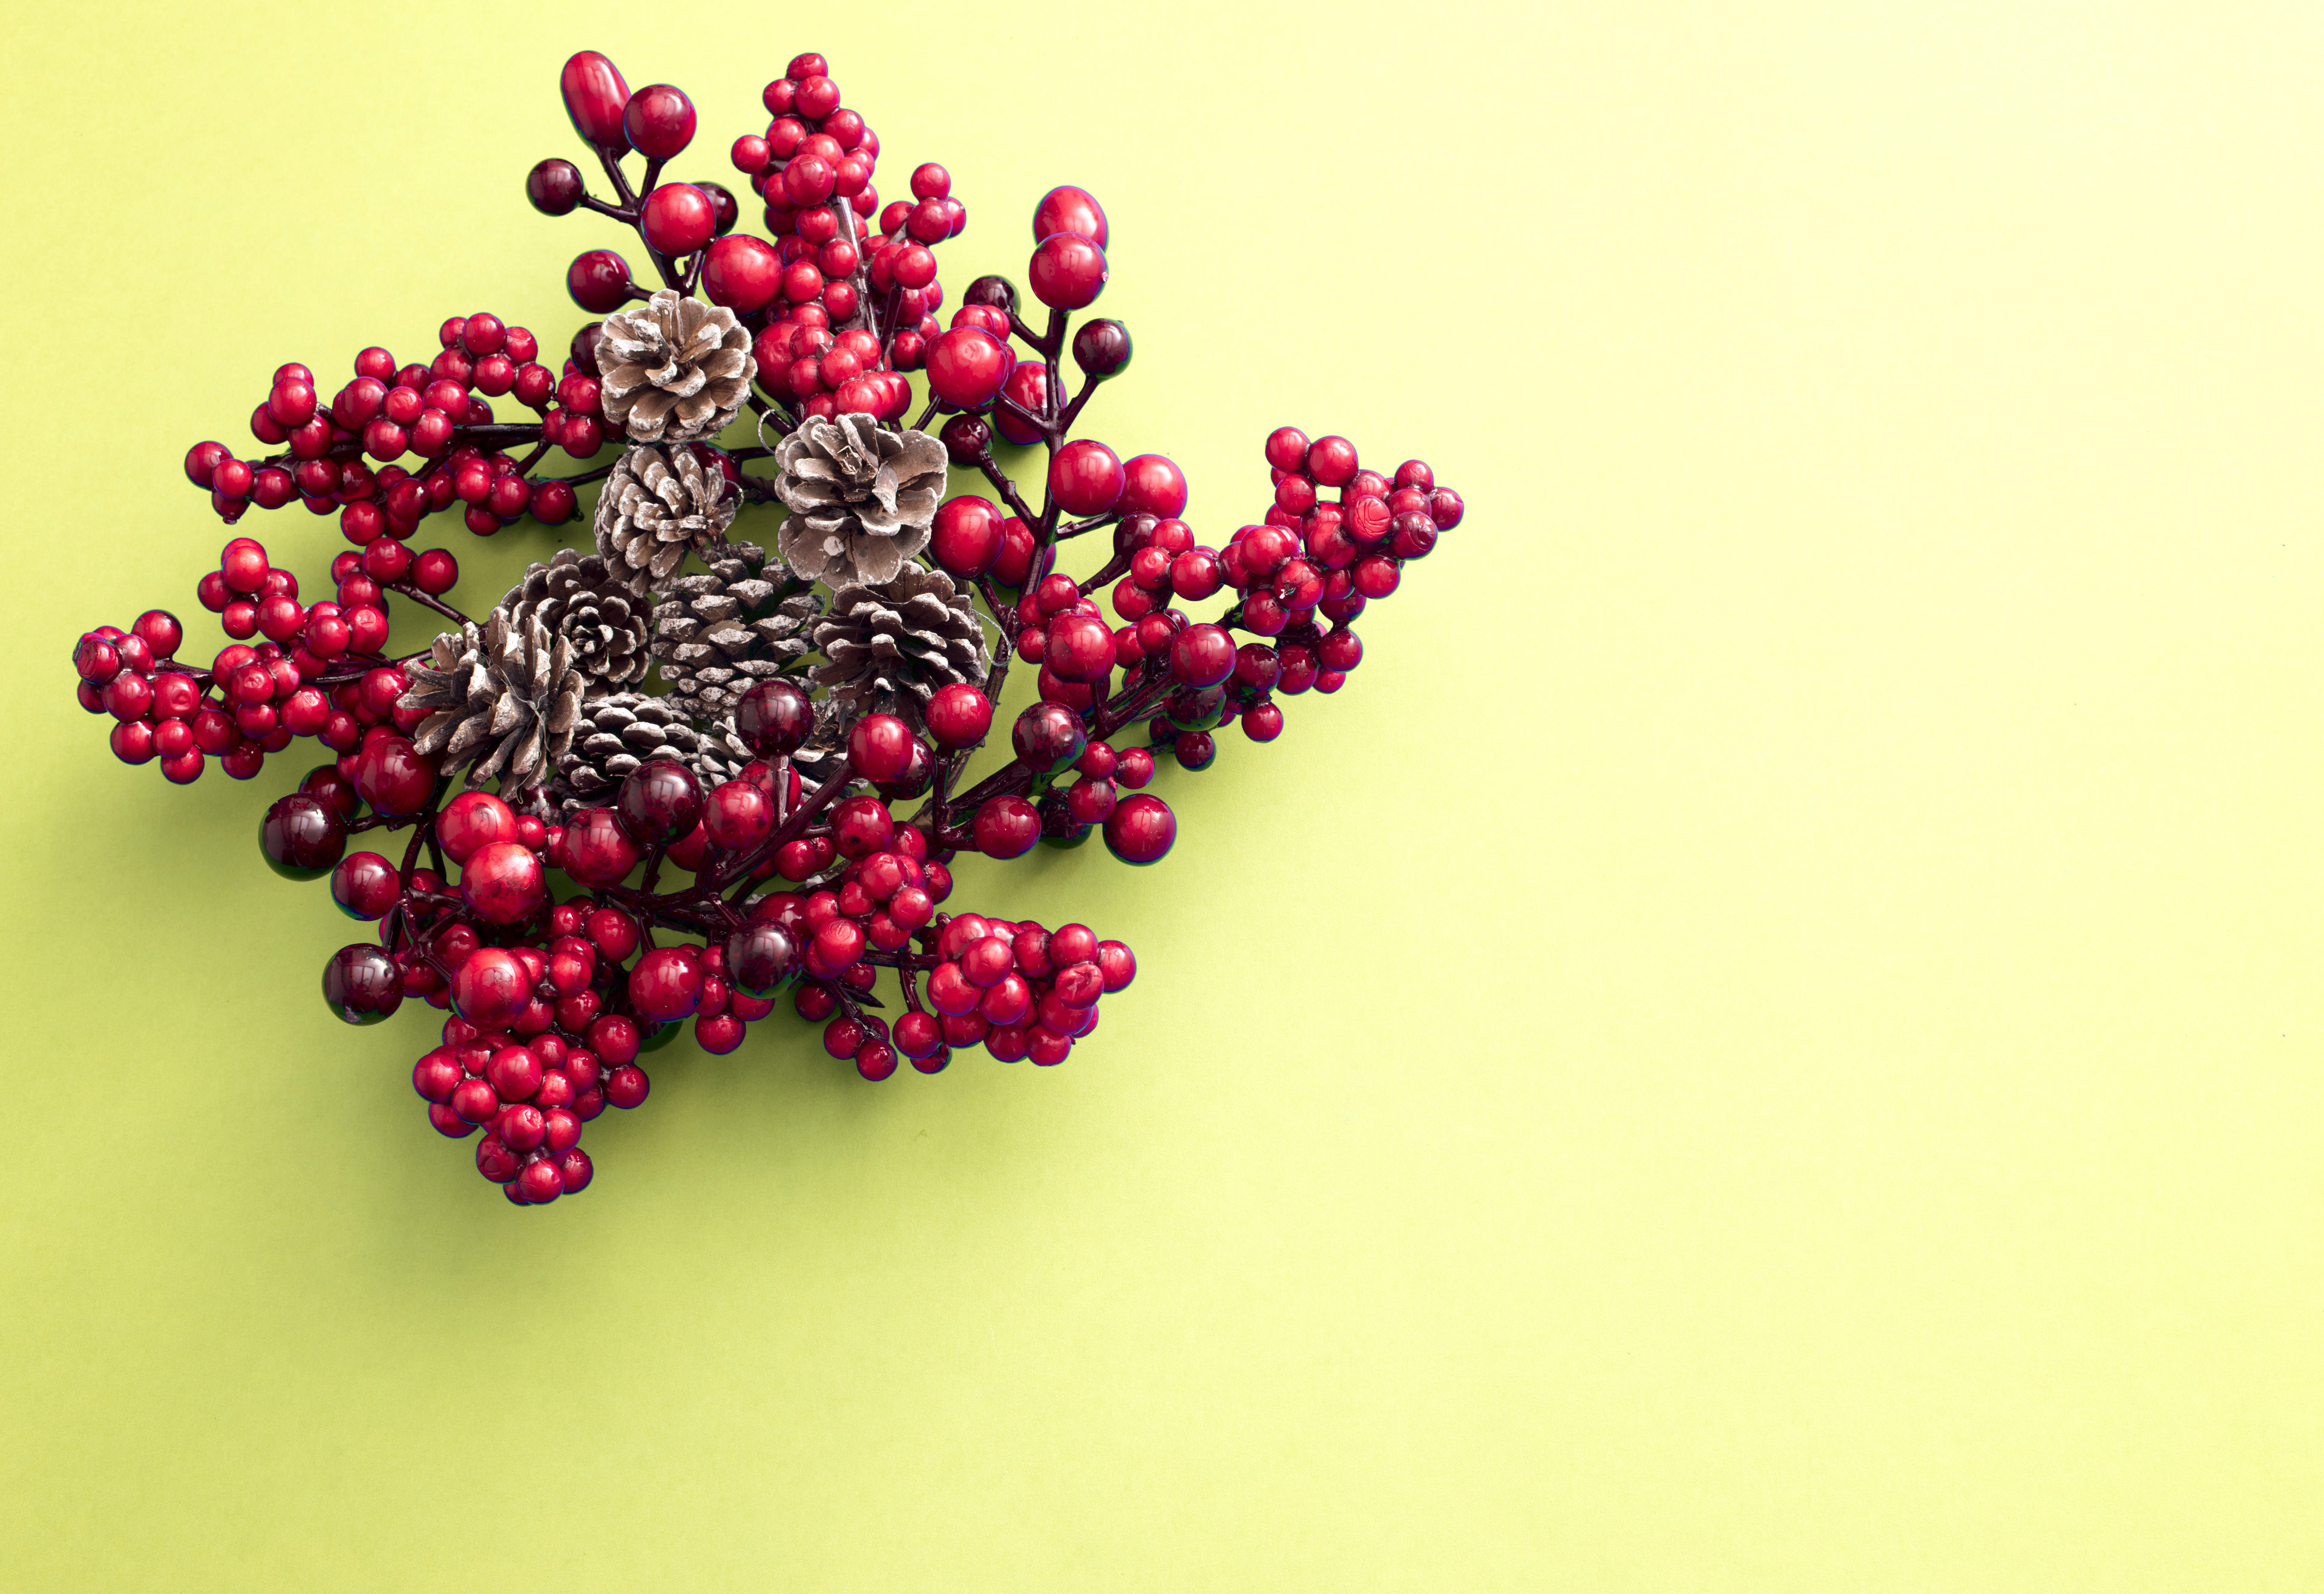 A decorative red Christmas berry wreath with frosted pine cones isolated on a plain yellow background with copy space.